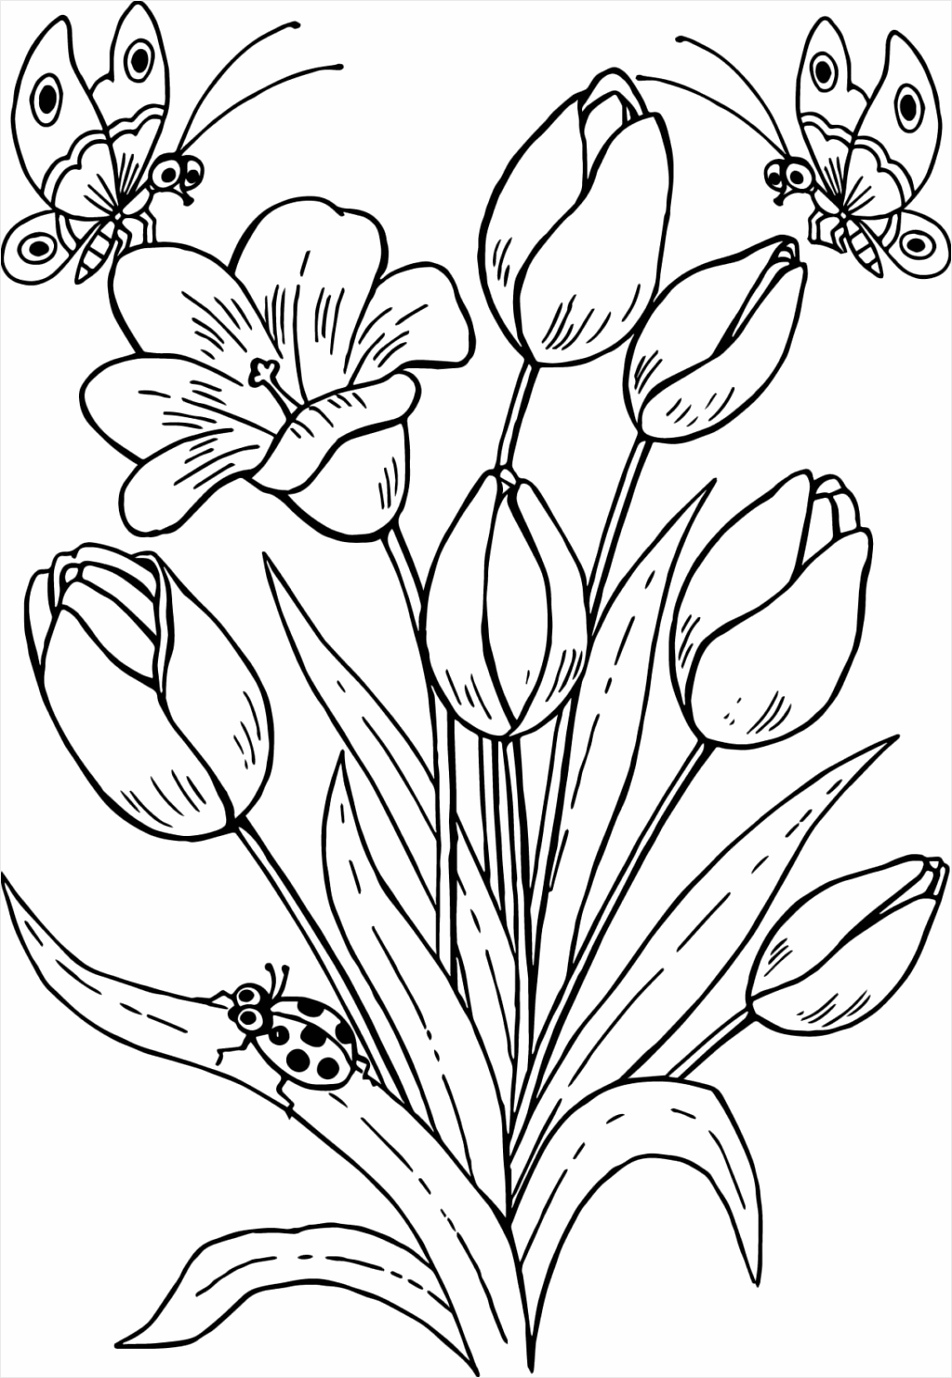 coloring pages cool drawing butterfly flowers tulips tulipes and tures color printable for adults roses activity sheets free print colouring template caterpillar of 1024x1467 uotry